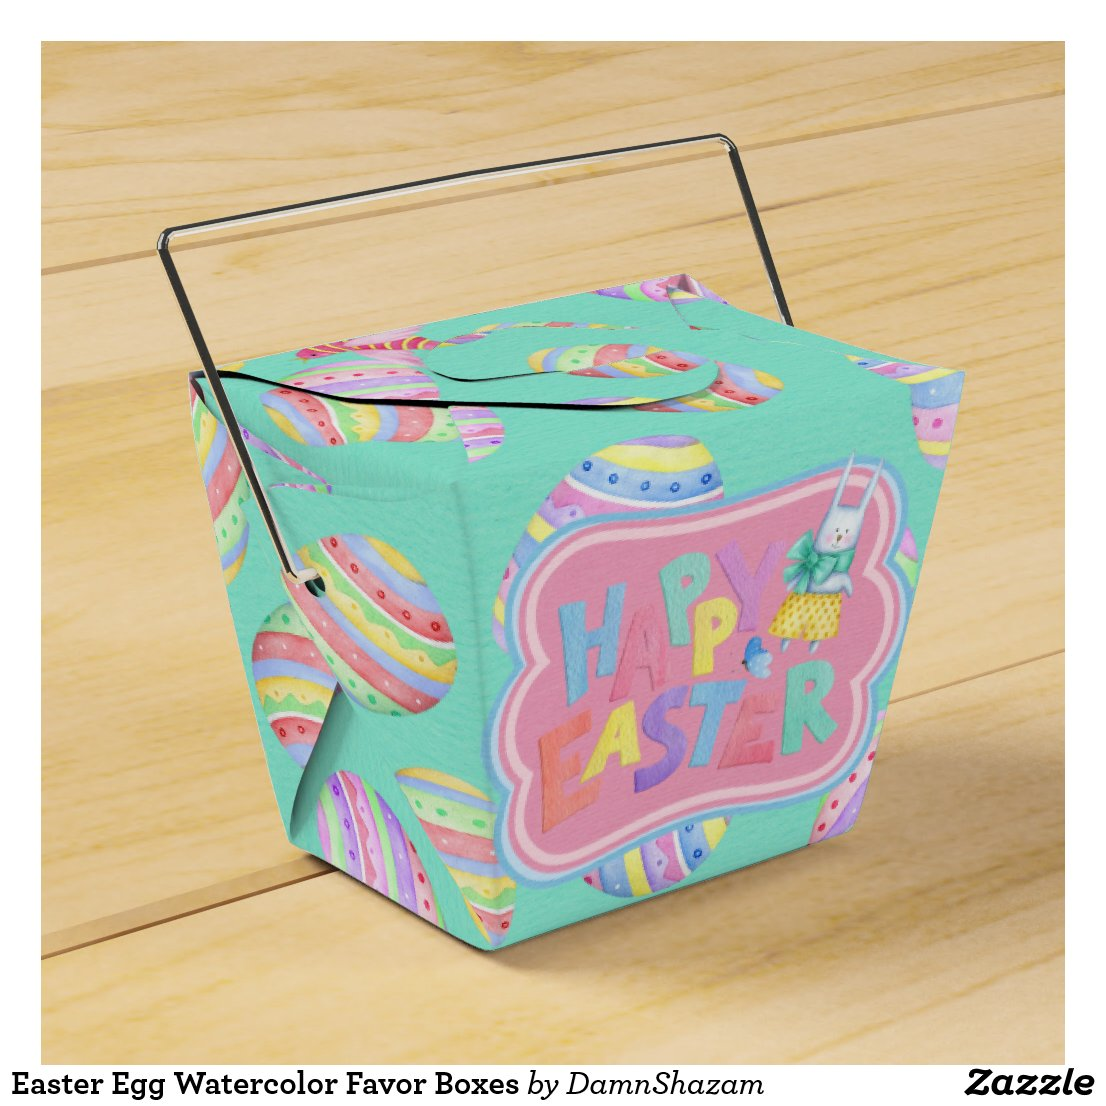 Easter Egg Watercolor Favor Boxes